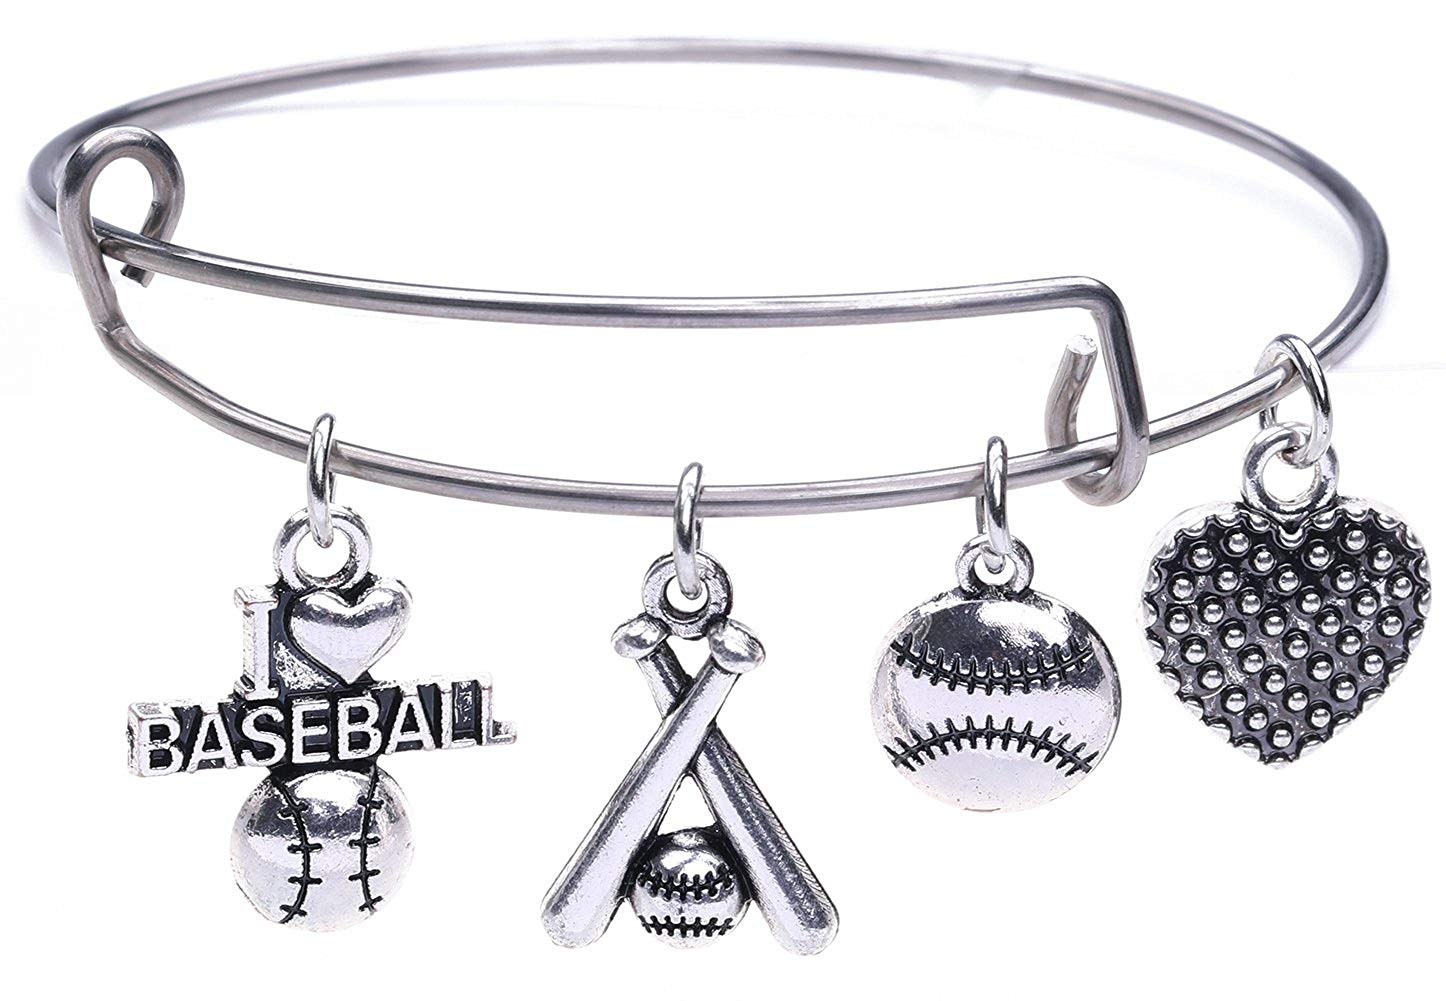 I Love Baseball with Sticks Baseball Heart Metal Alloy Charm Bangle Bracelet Jewelry for Sports Lover